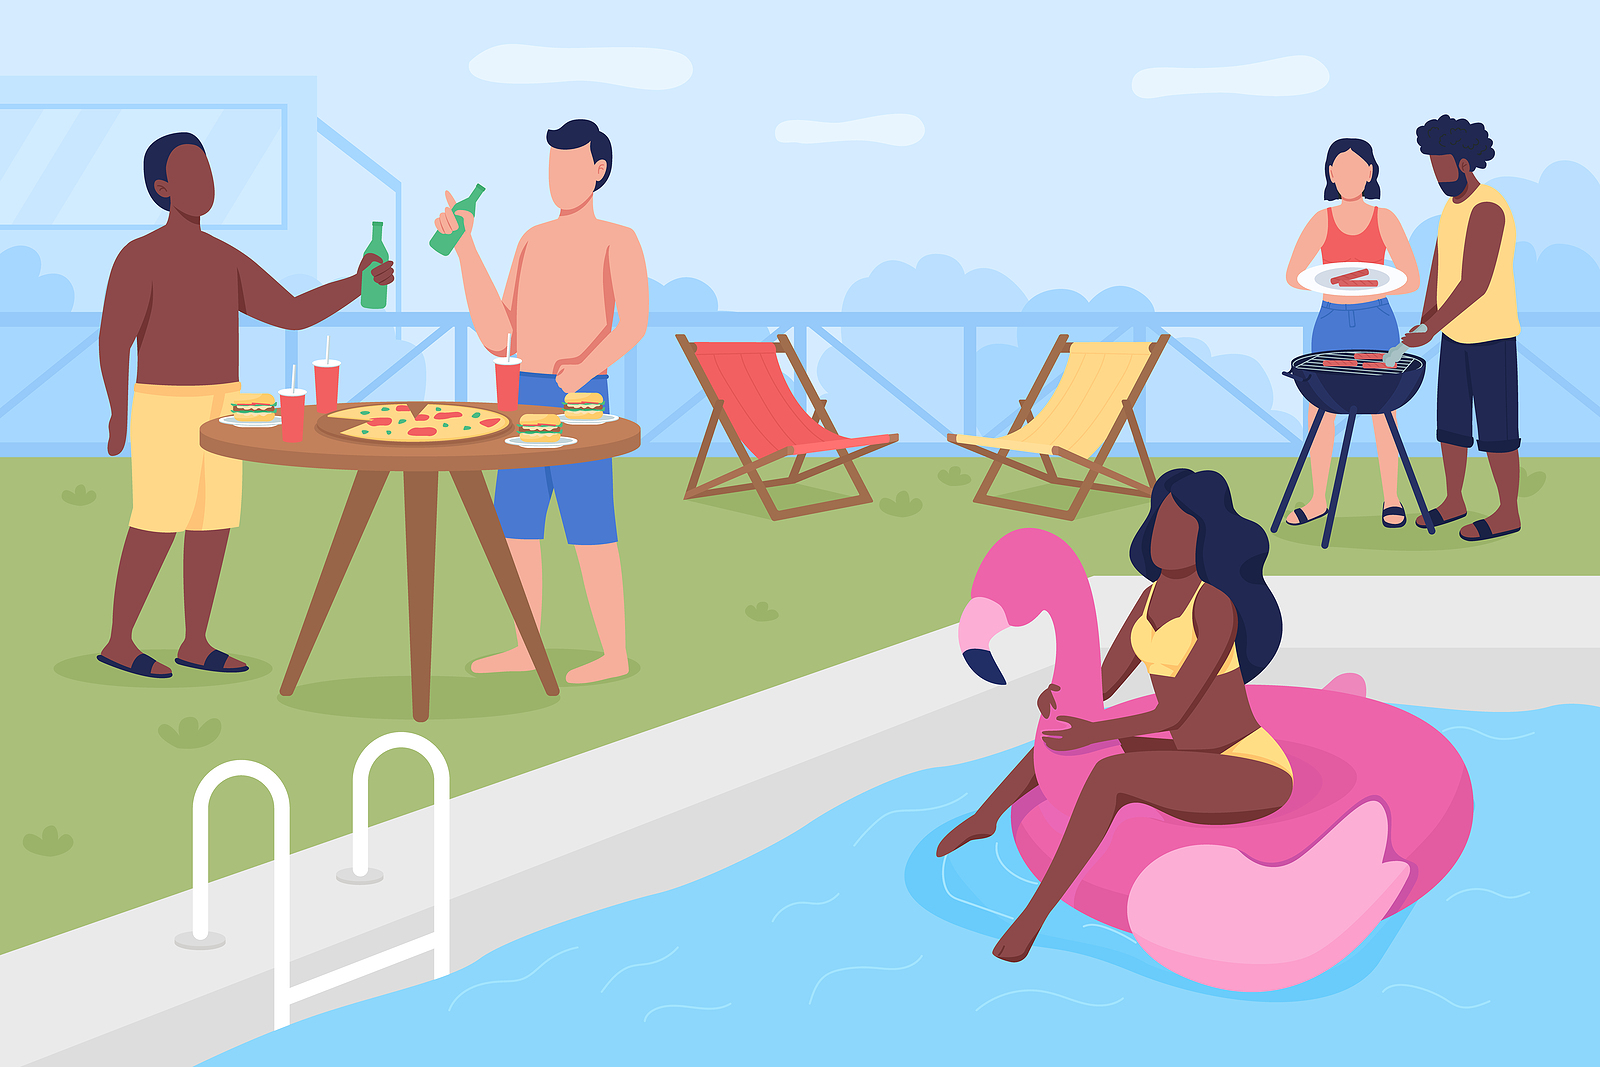 swimming-pool-party-with-friends-illustration-RKHomeowner